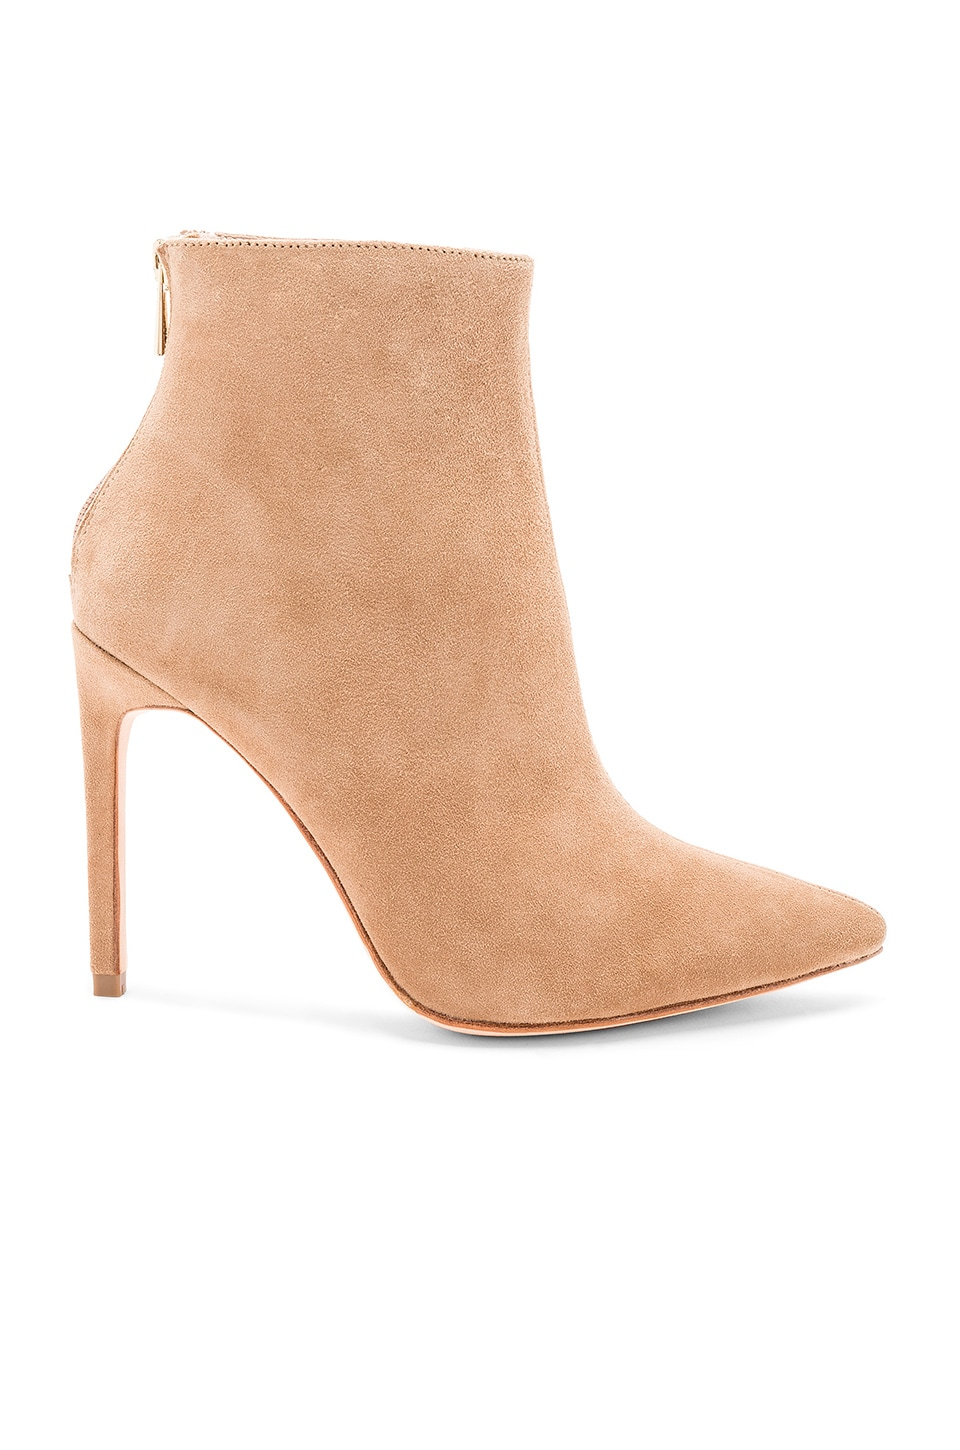 RAYE Tati Booties in Tan